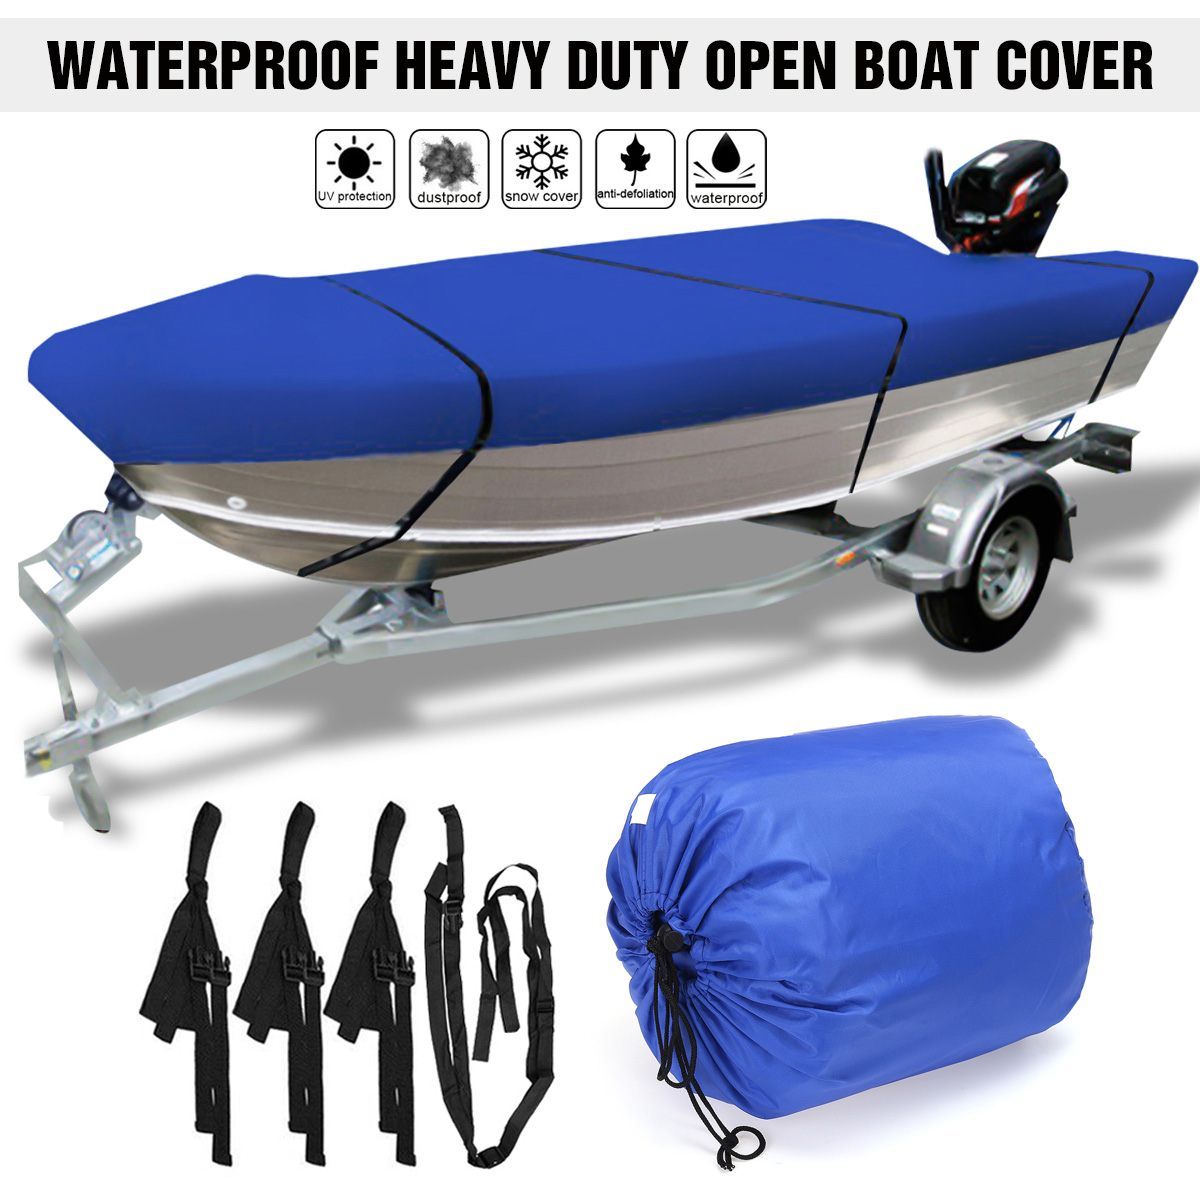 3.5-4.5m Trailerable Heavy Duty Open Boat Cover Fishing Runabout Waterproof 210D